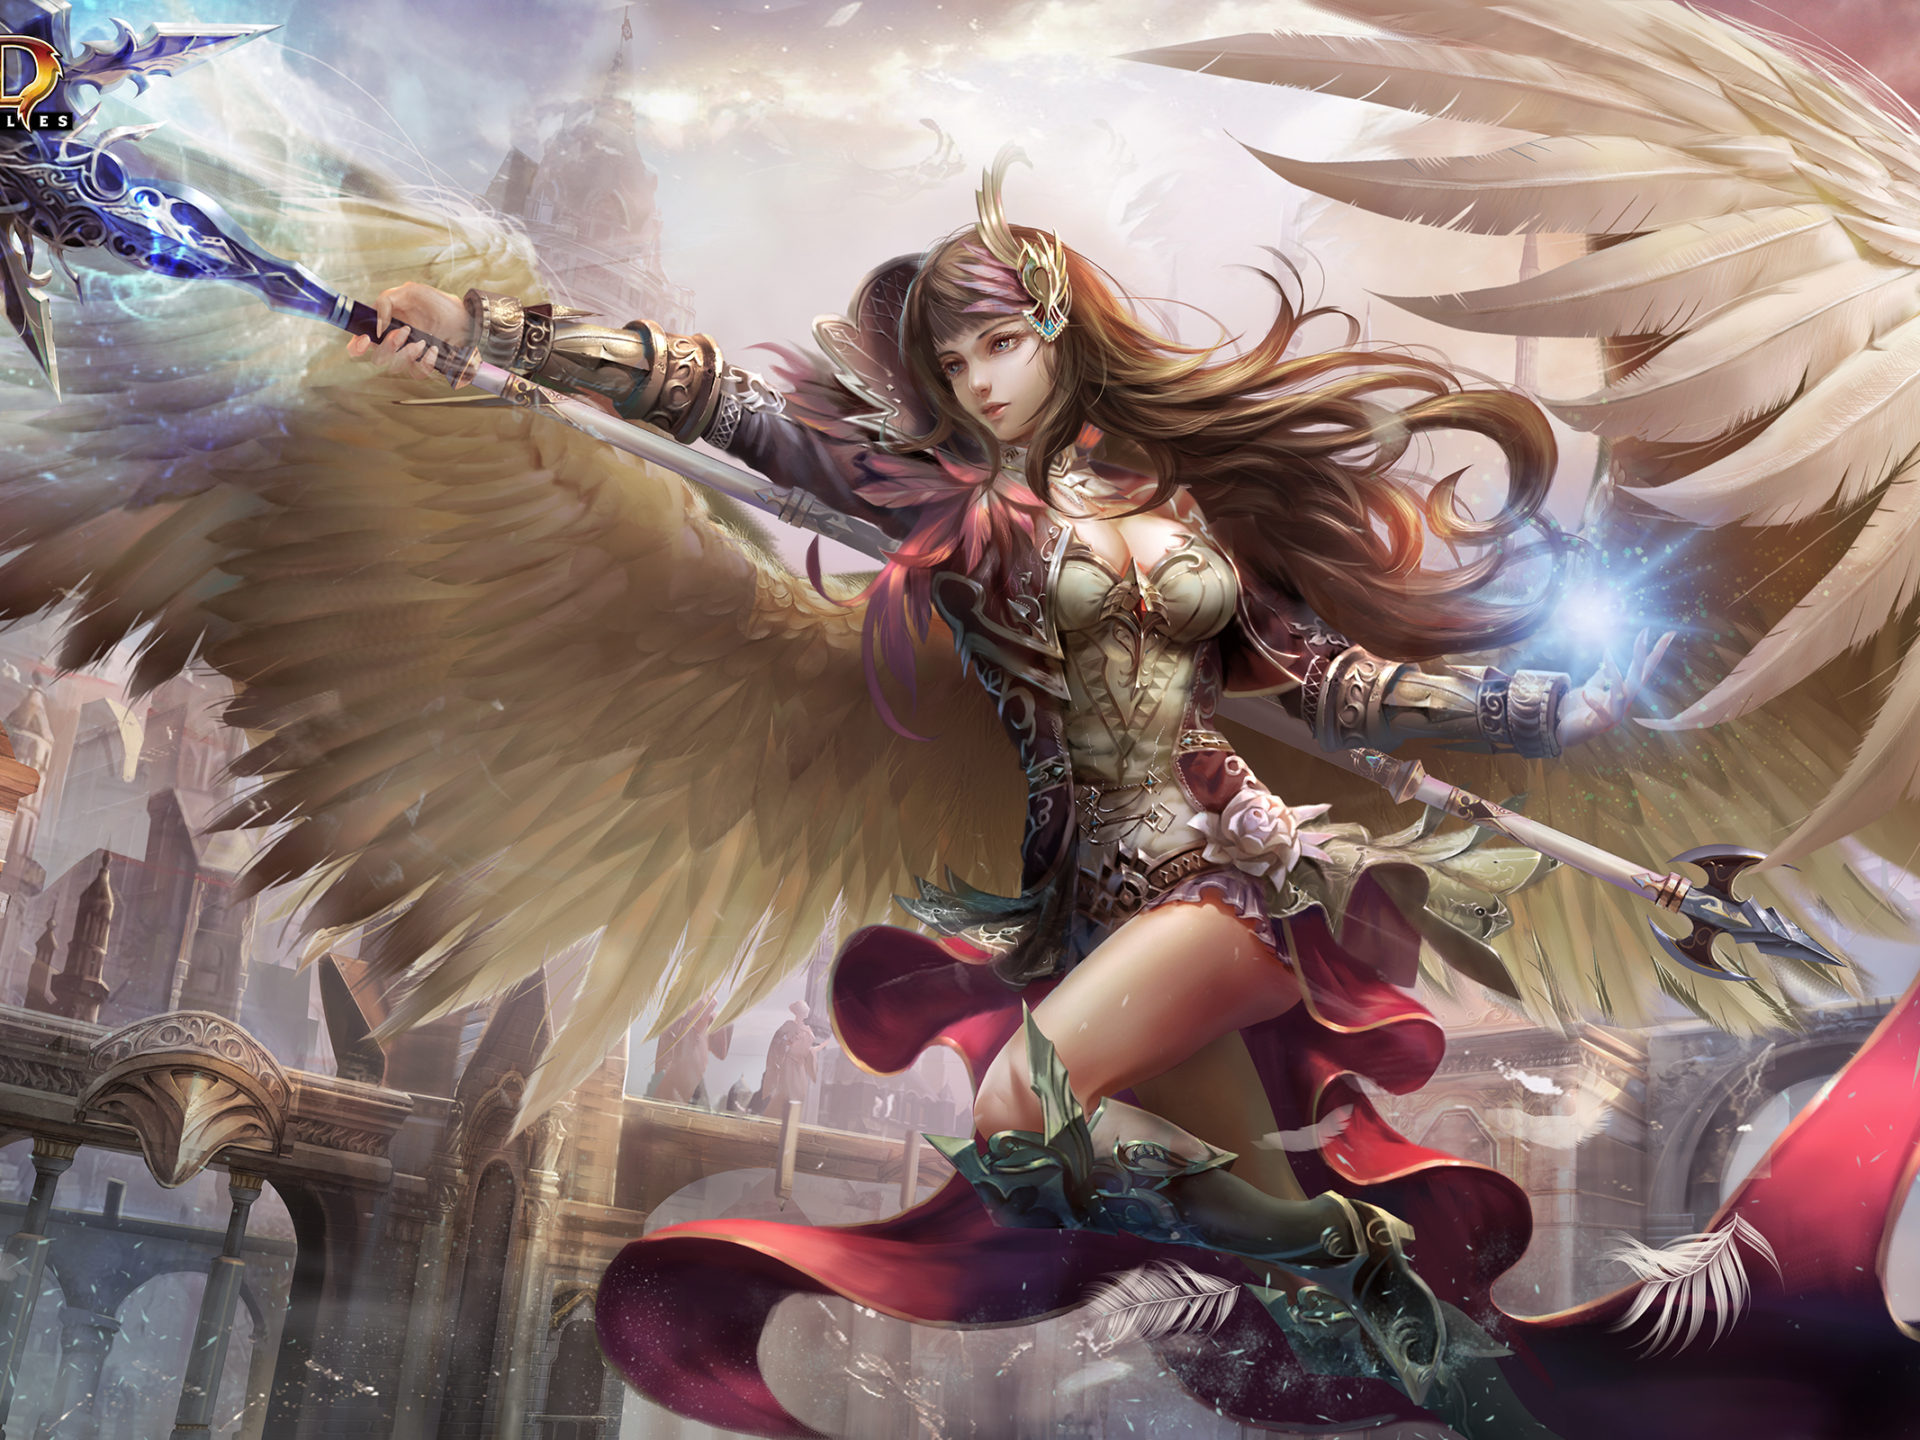 Animated Girl Wallpaper Free Download Hcd Game Supplies Avenging Angel Wallpaper Hd 2560x1600